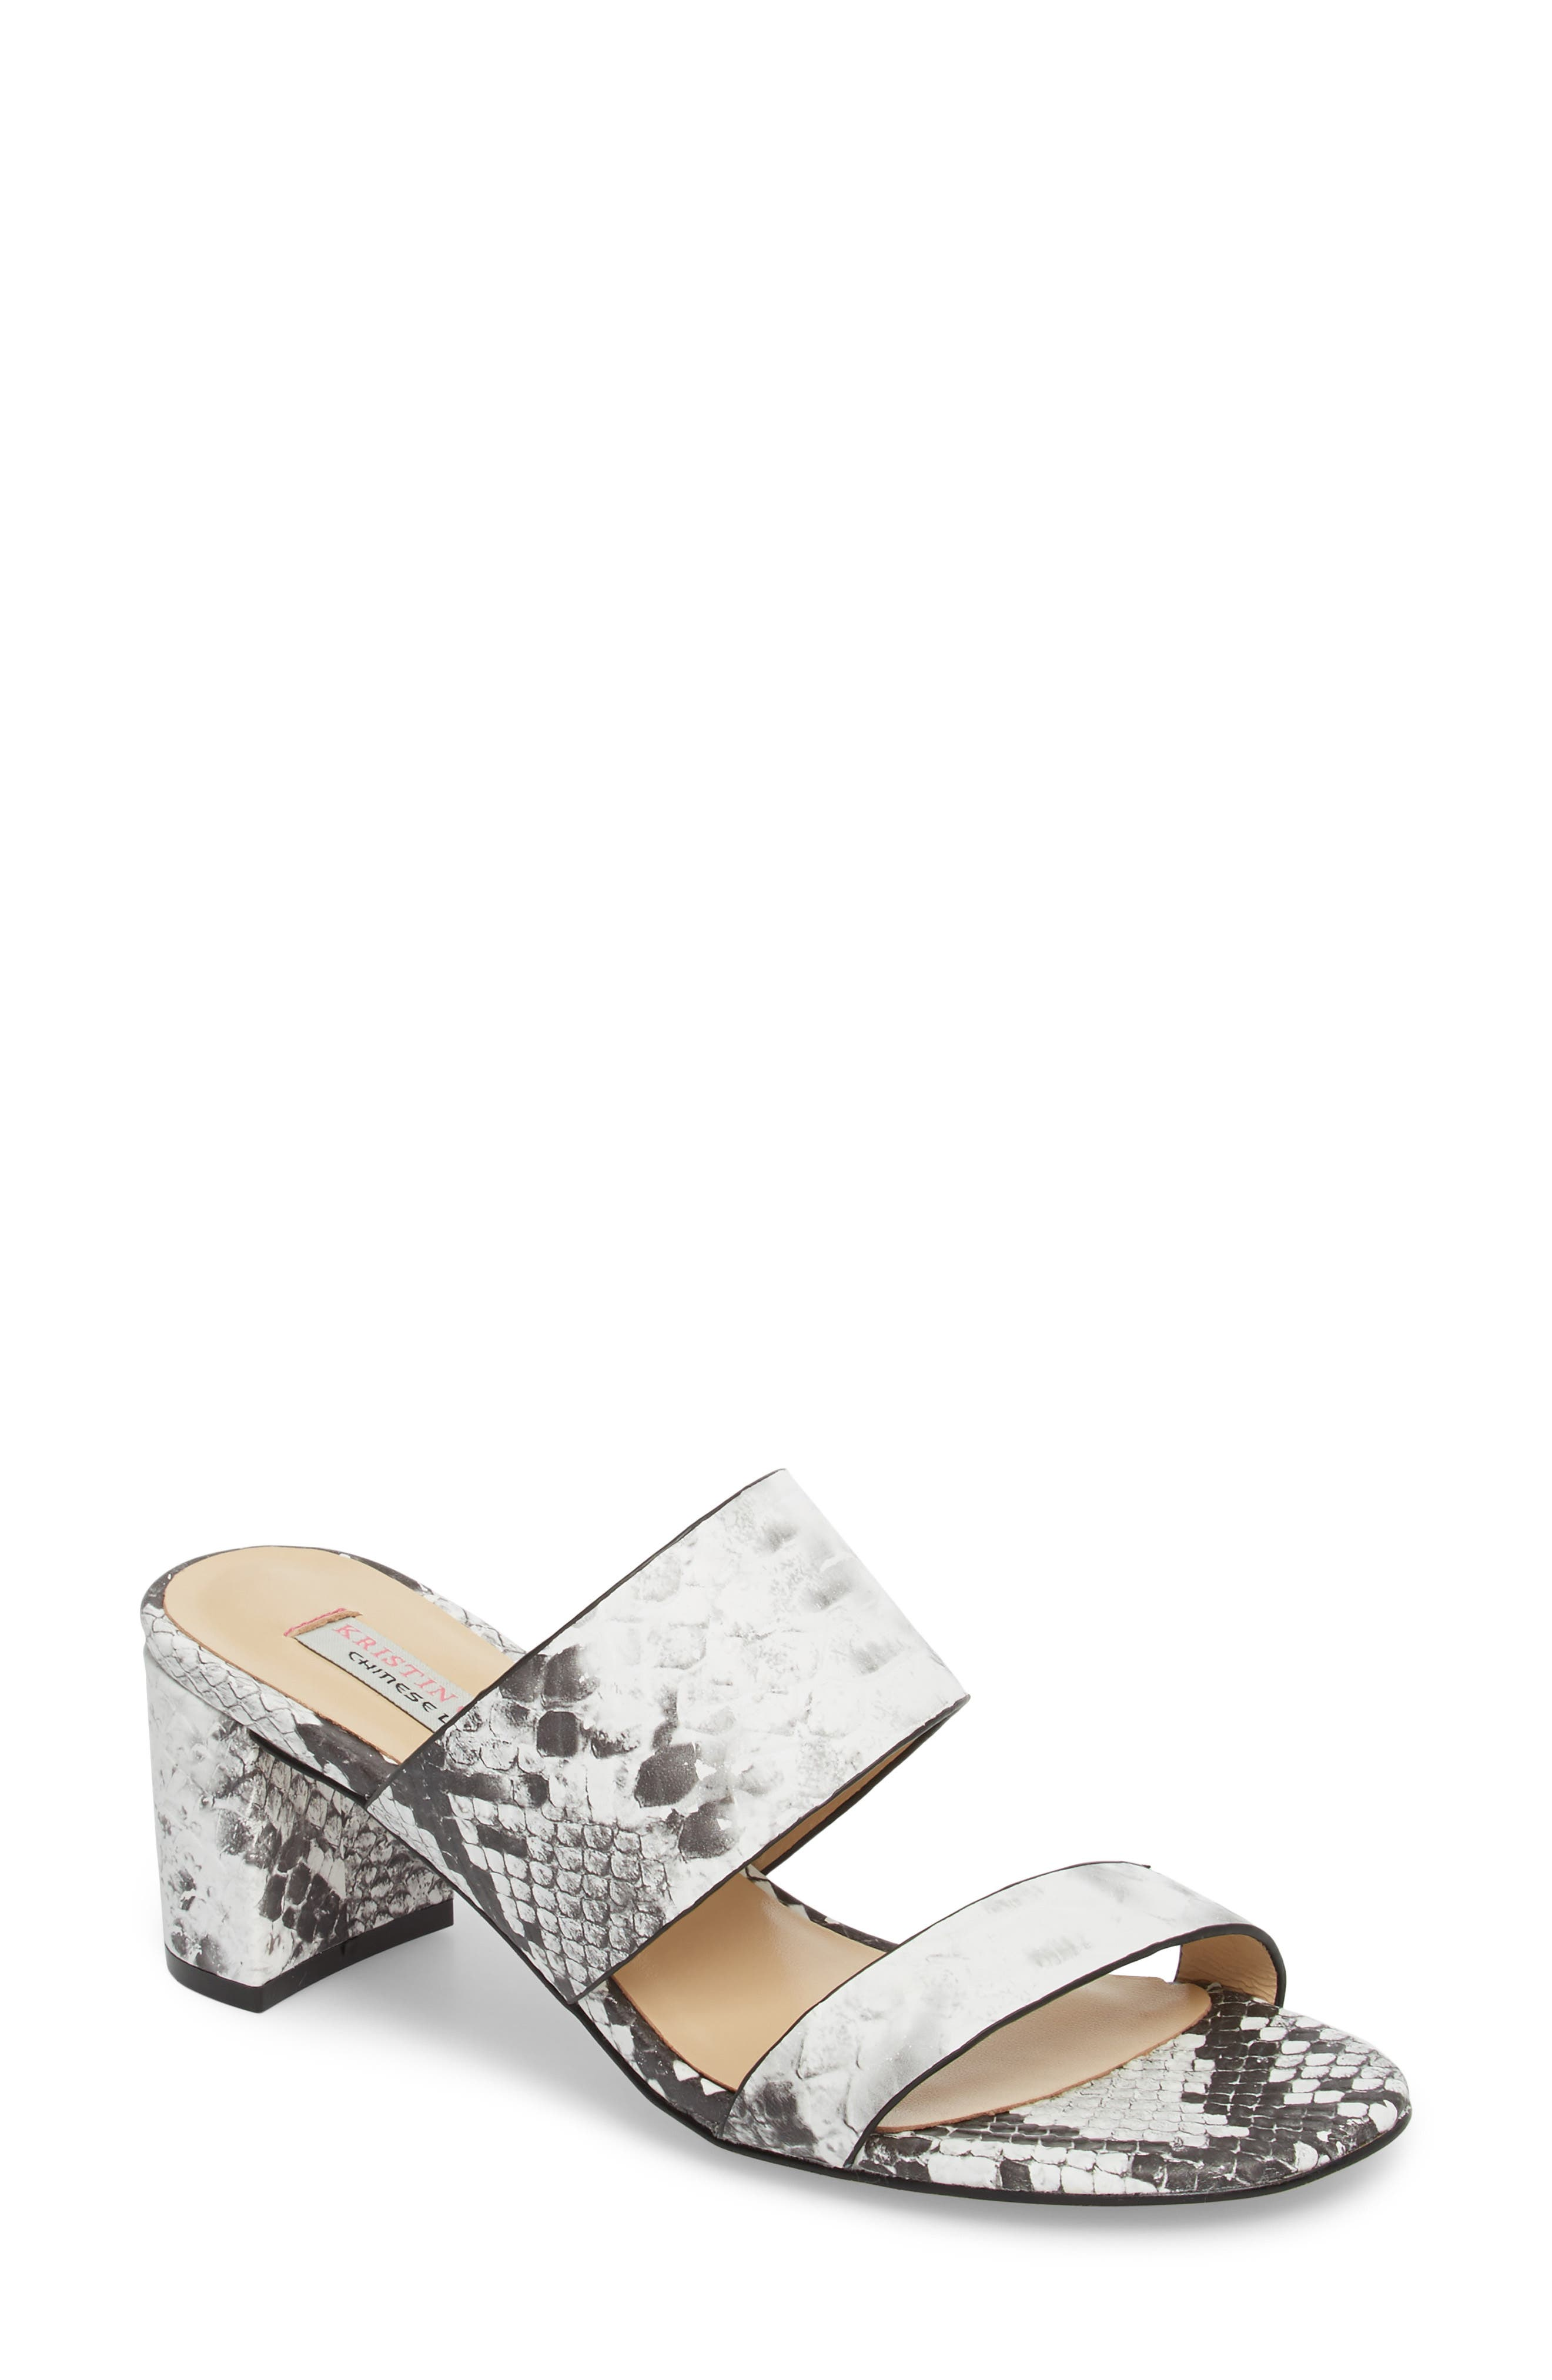 Lakeview Sandal,                         Main,                         color, GREY/ WHITE PRINT LEATHER